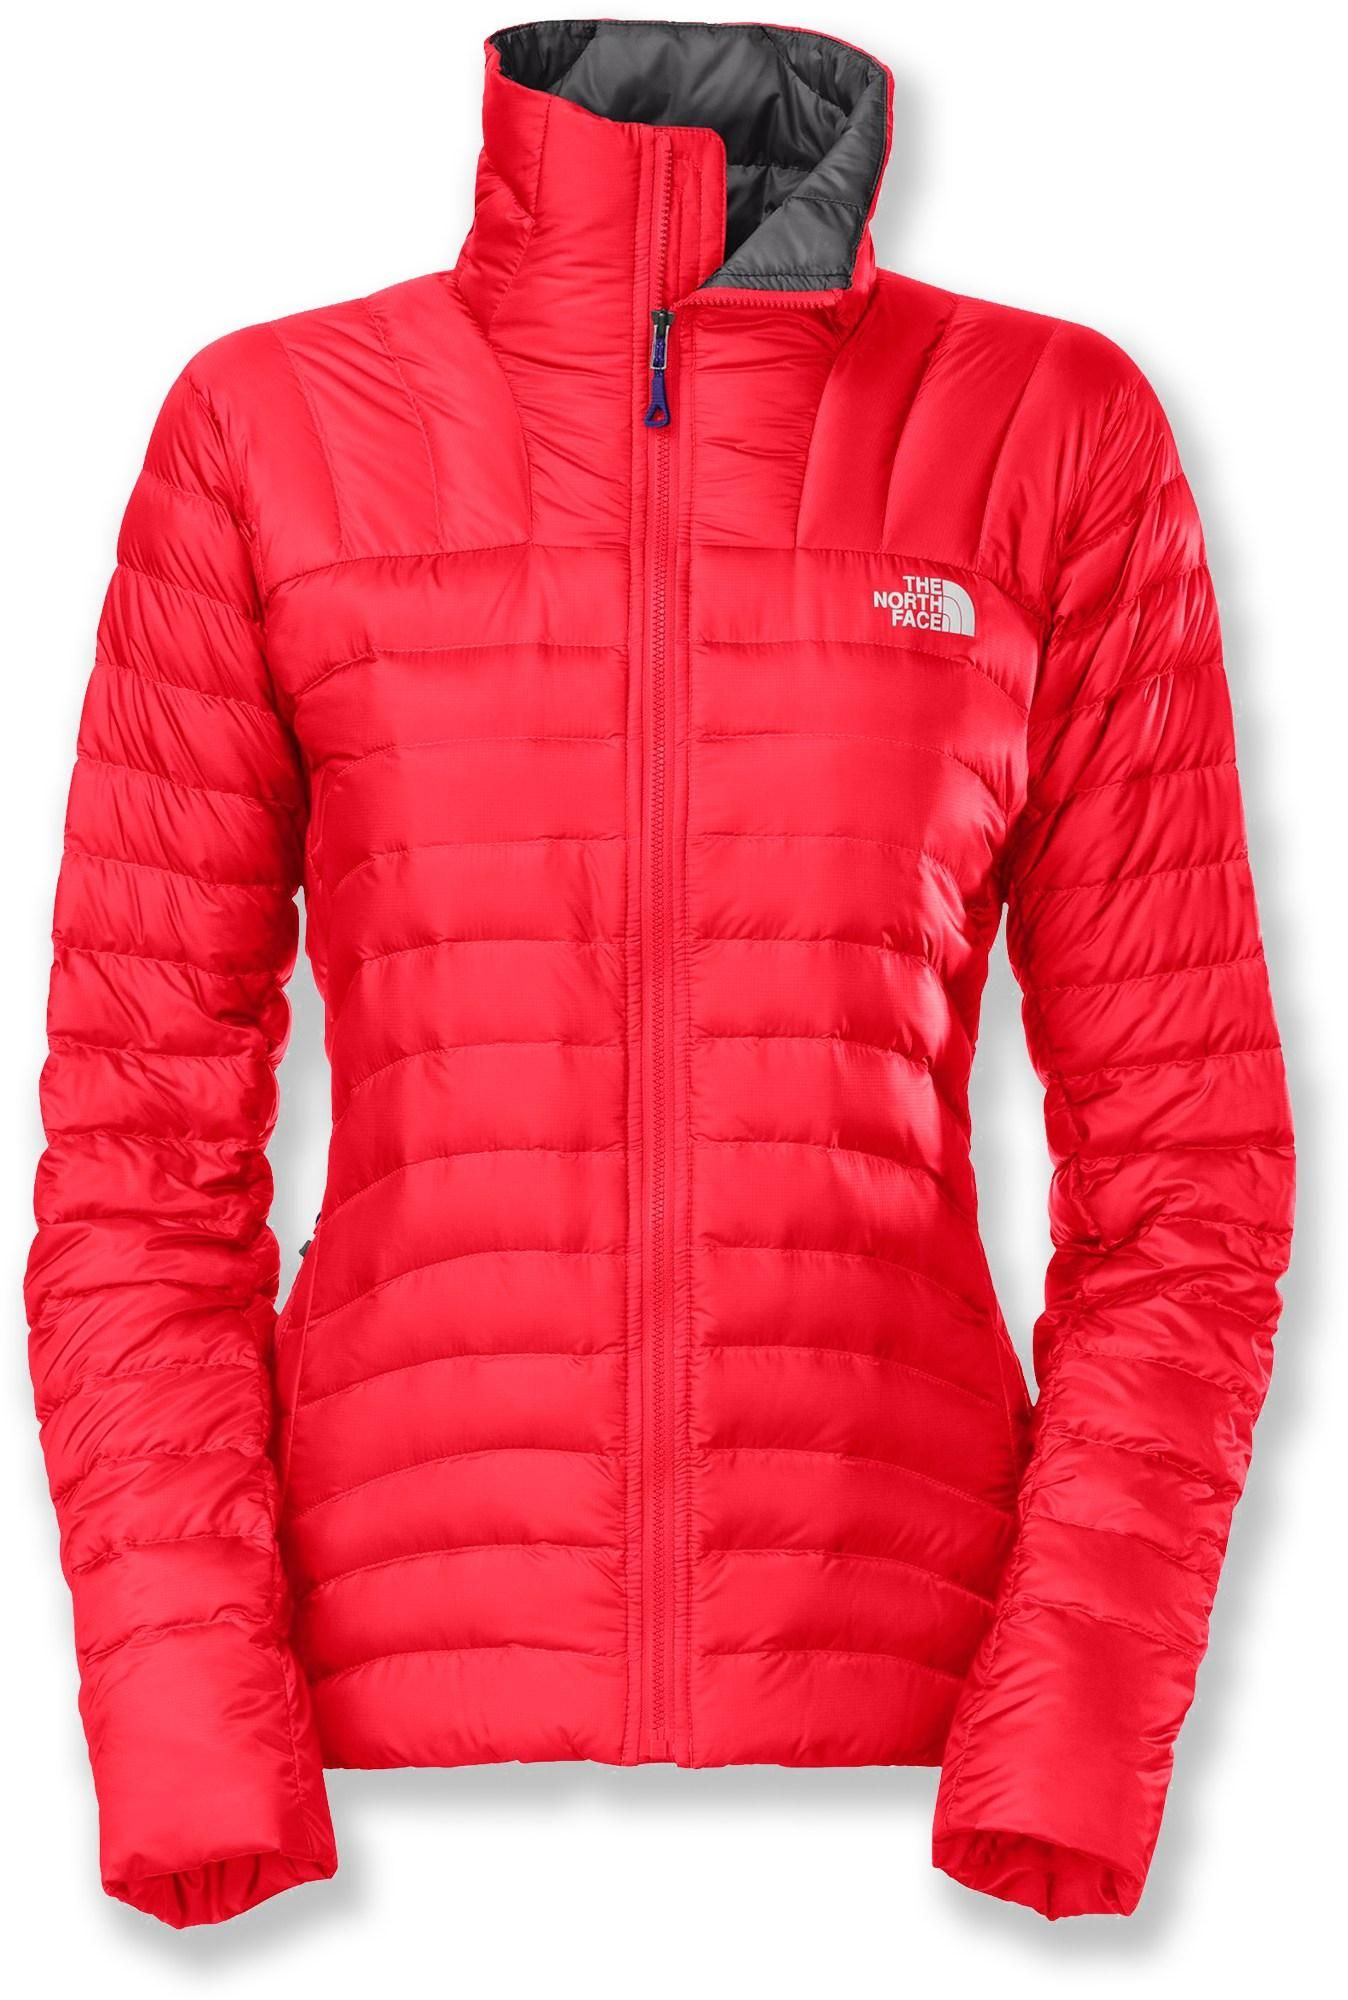 The North Face Thunder Micro Jacket Women S Rei Co Op Jackets For Women North Face Women Jackets